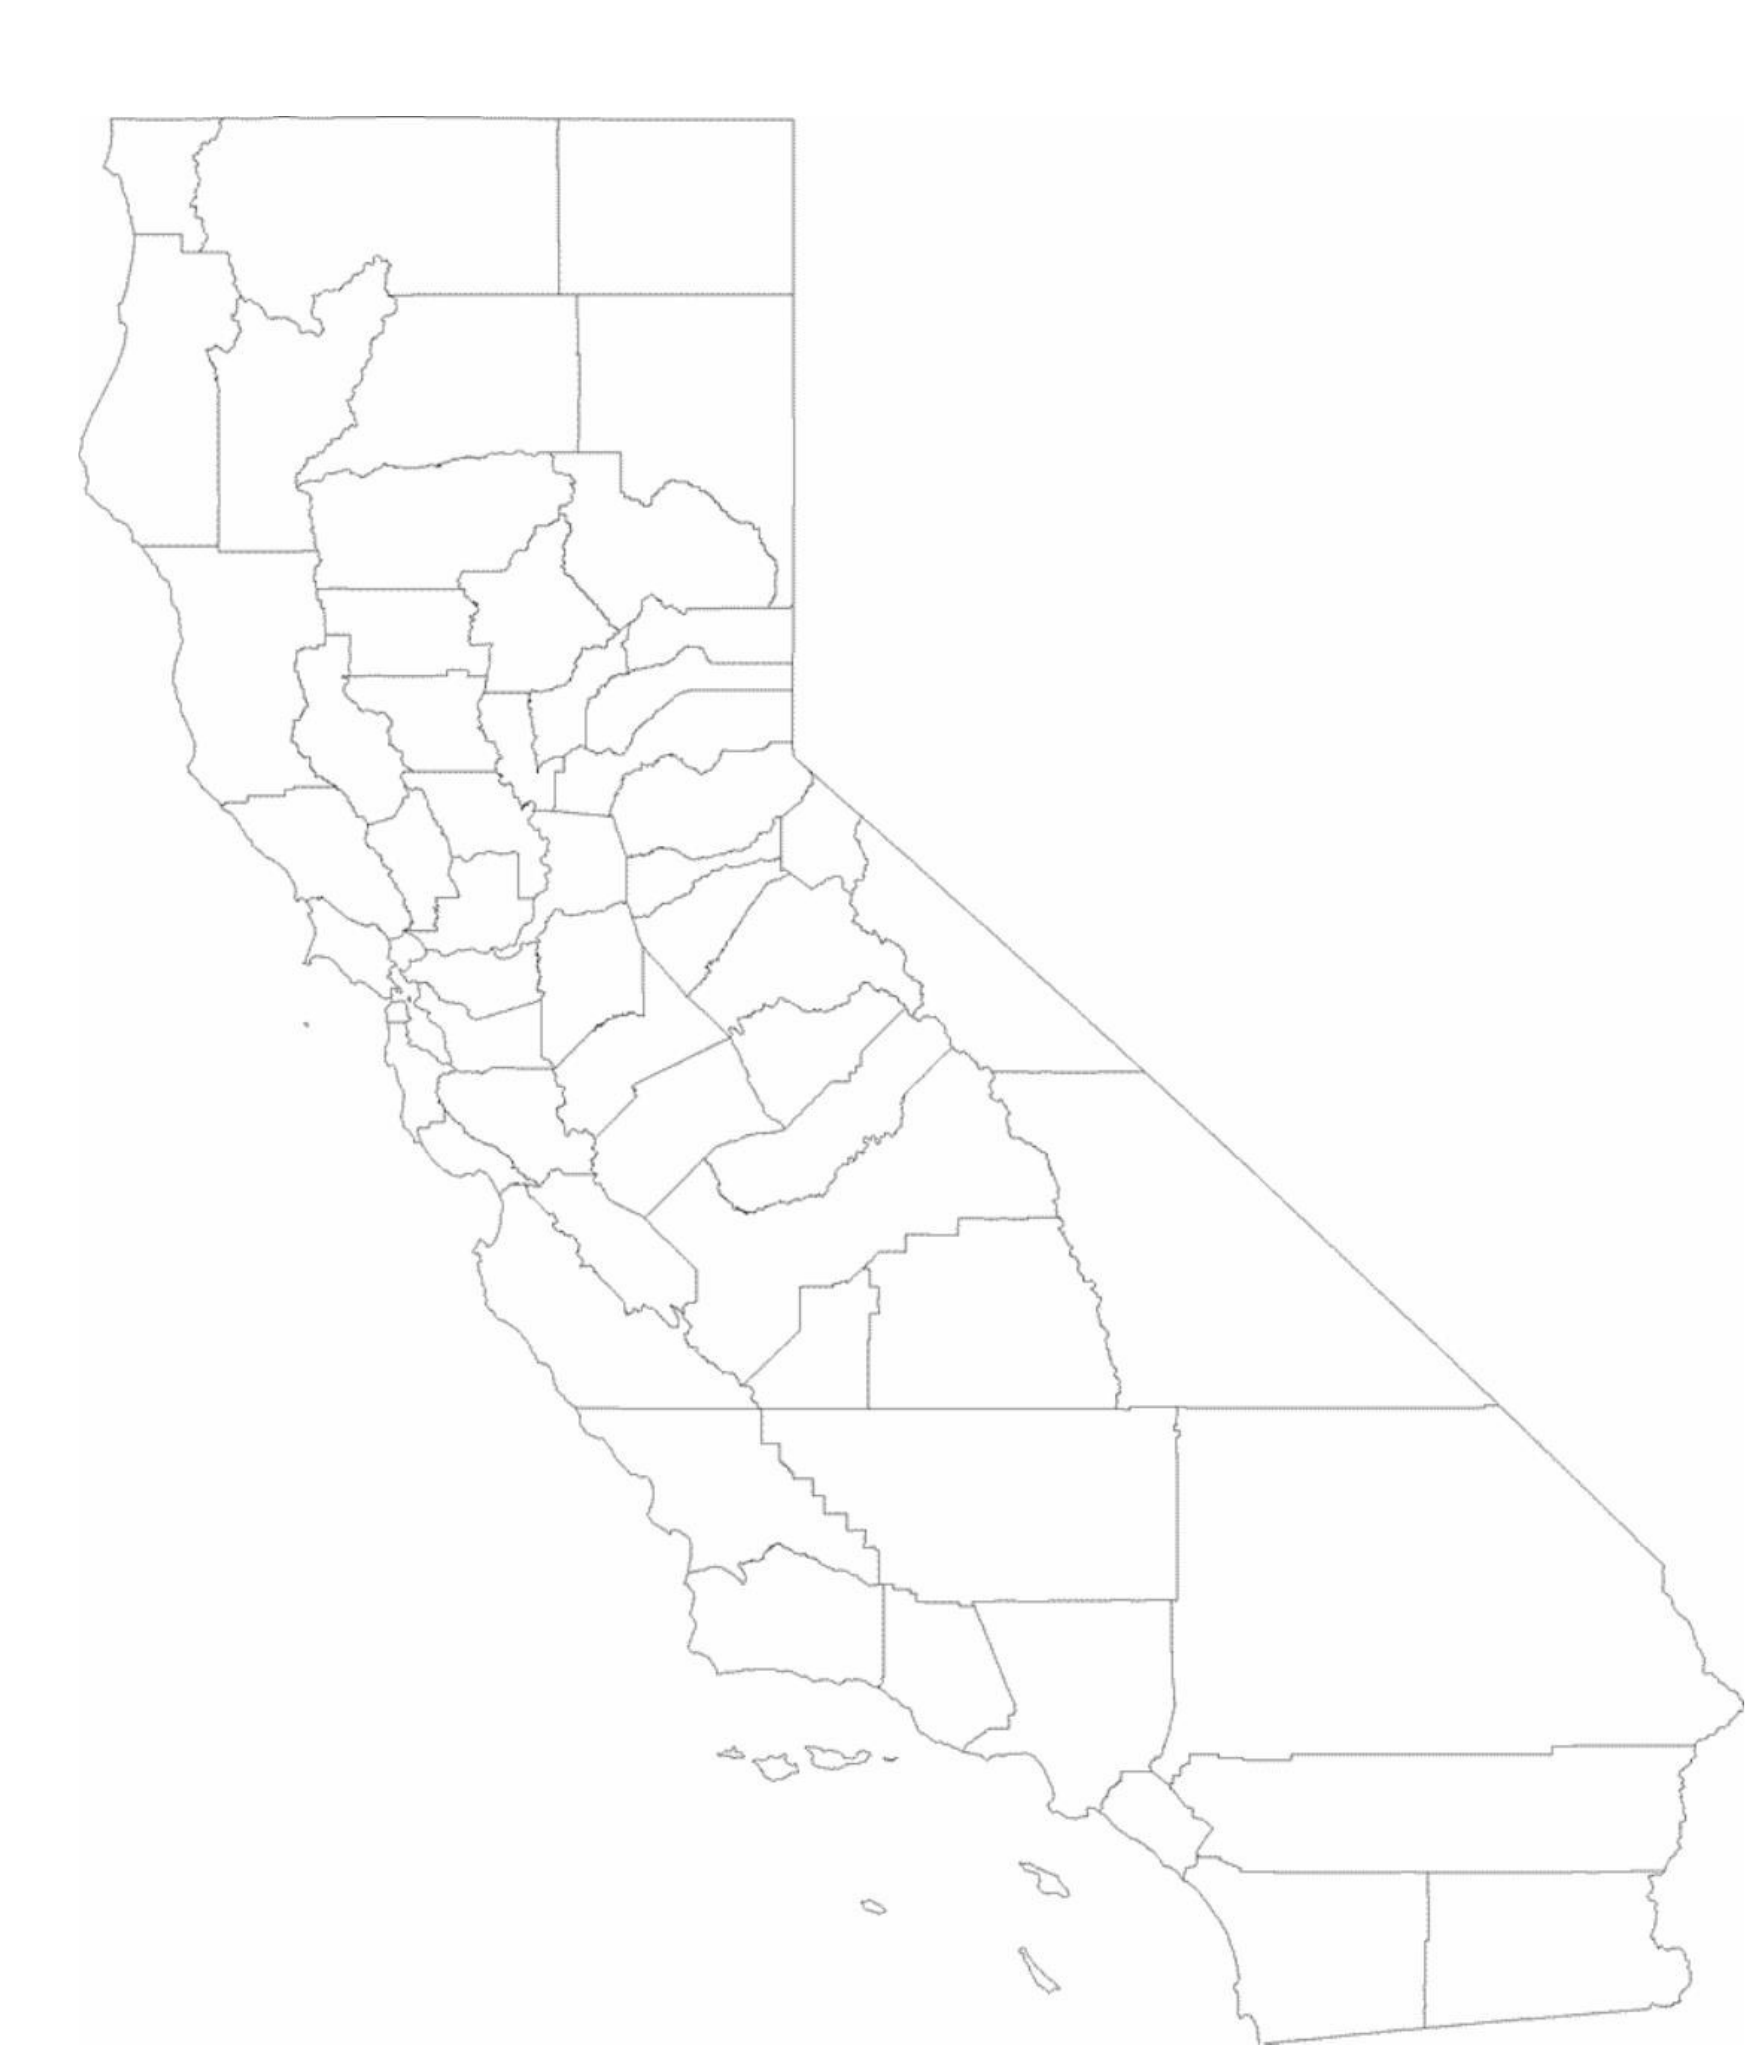 blank california county map free download